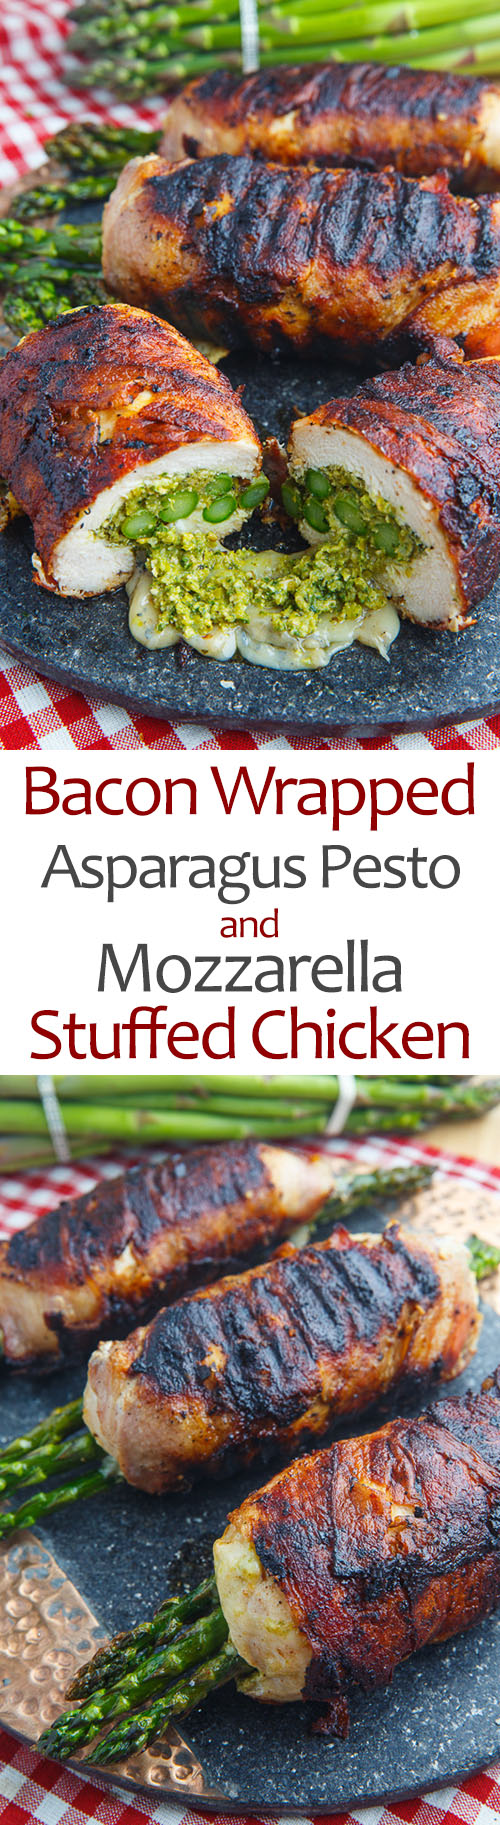 Bacon Wrapped Asparagus, Asparagus and Pistachio Pesto and Mozzarella Stuffed Chicken